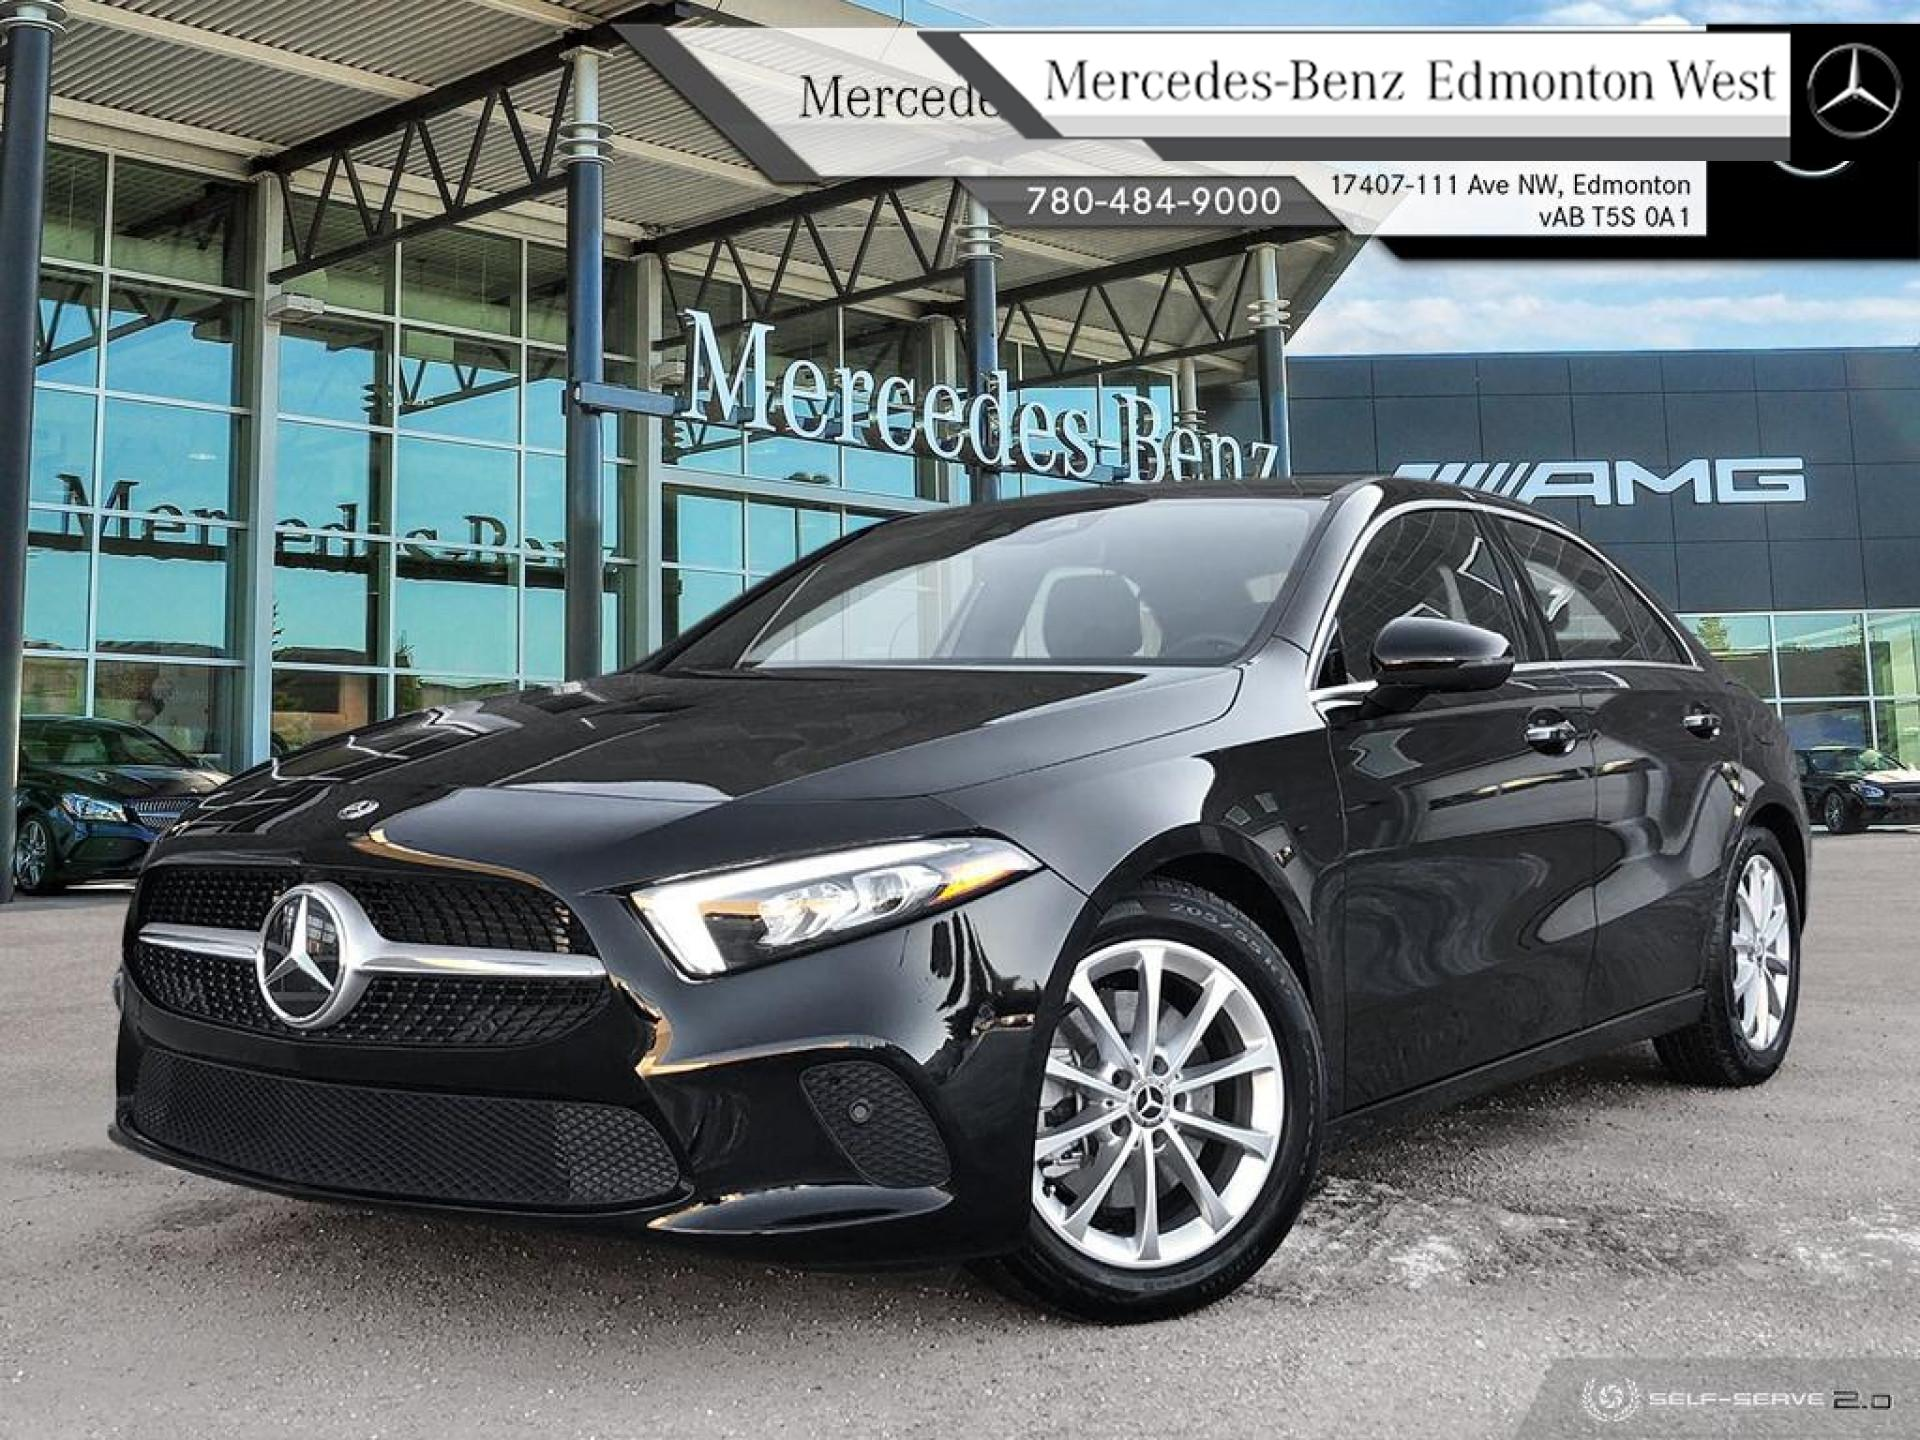 Pre-Owned 2020 Mercedes Benz A Class 220 4MATIC Sedan